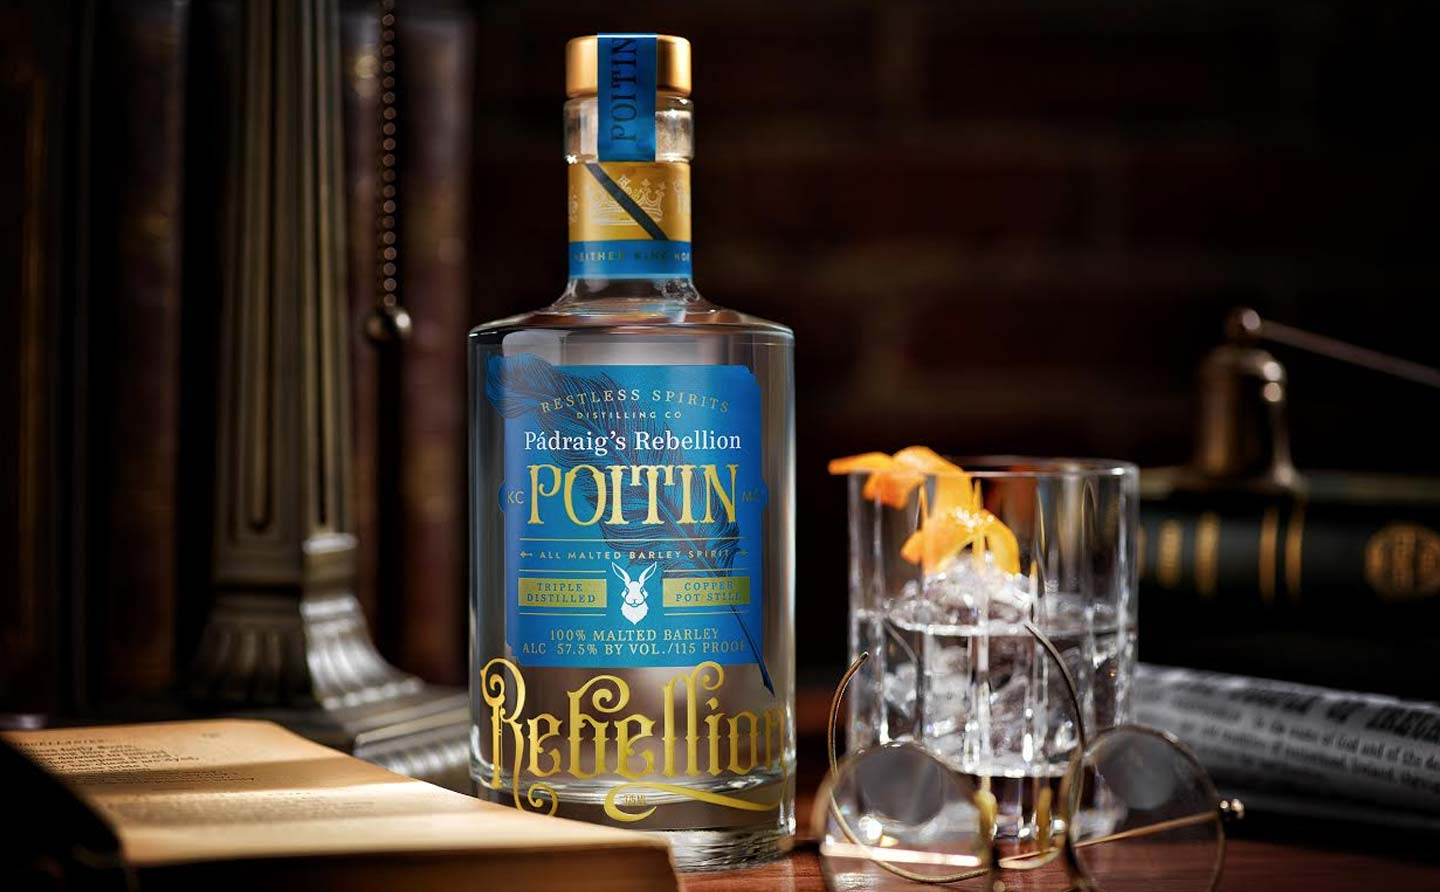 Pádraig's Rebellion Poitin